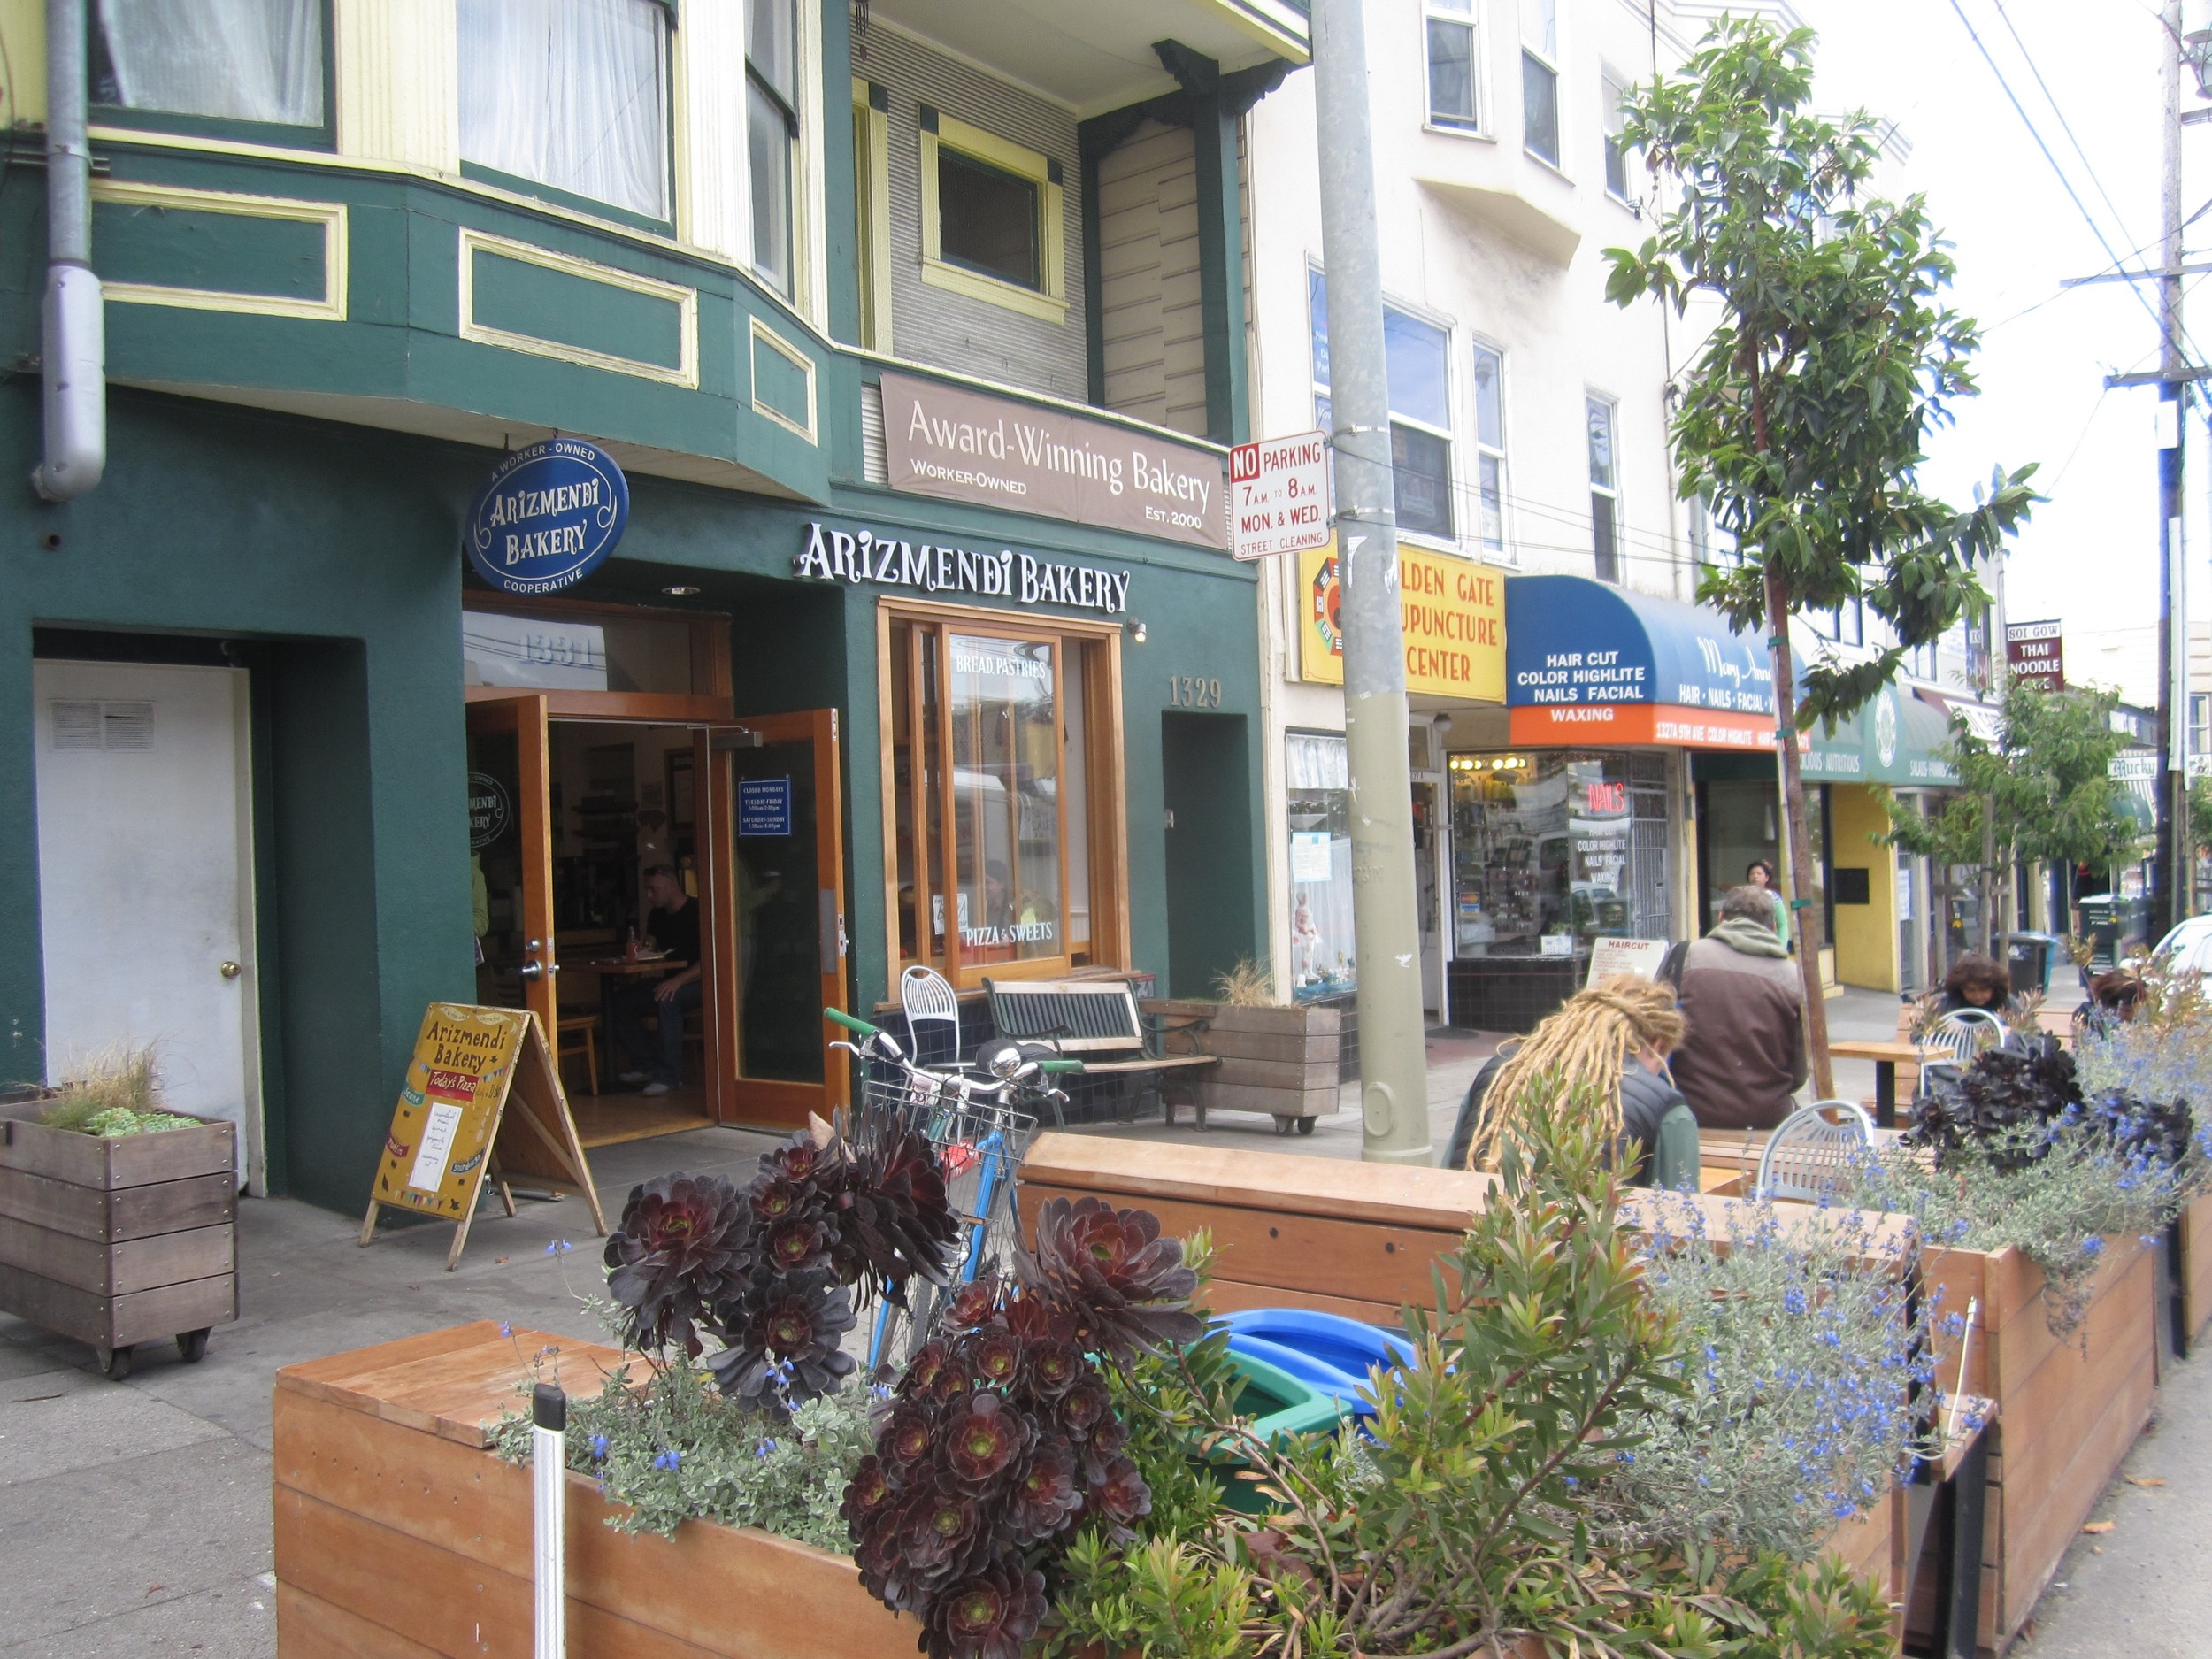 A plethora of hip shops, scrumptious ethnic restaurants and relaxed neighborhood bars line the streets surrounding the intersection of Irving Street and 9th Avenue.